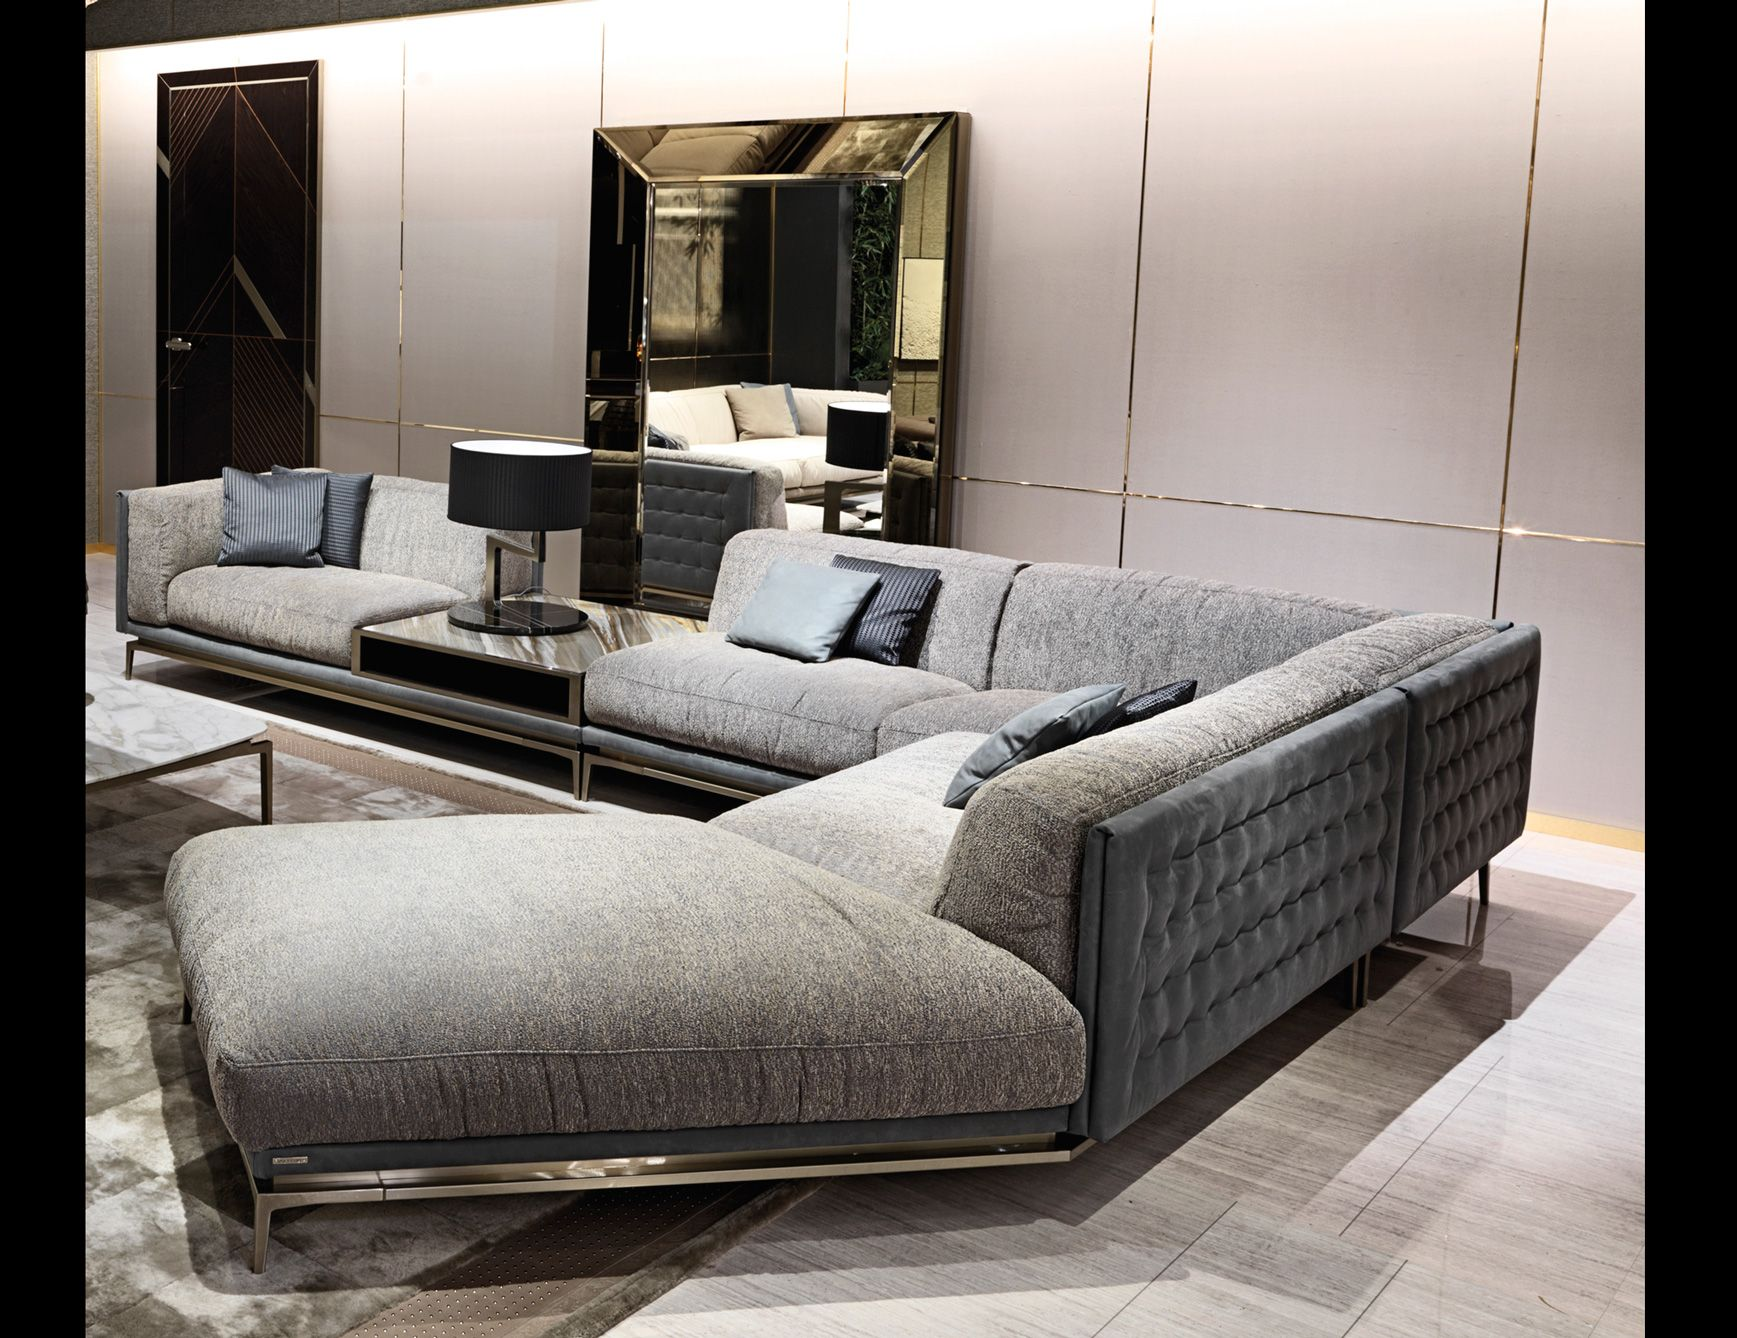 Click To Close Image Click And Drag To Move Use Arrow Keys For Next And Previous Living Room Sofa Design Luxury Sofa Design Sofa Design